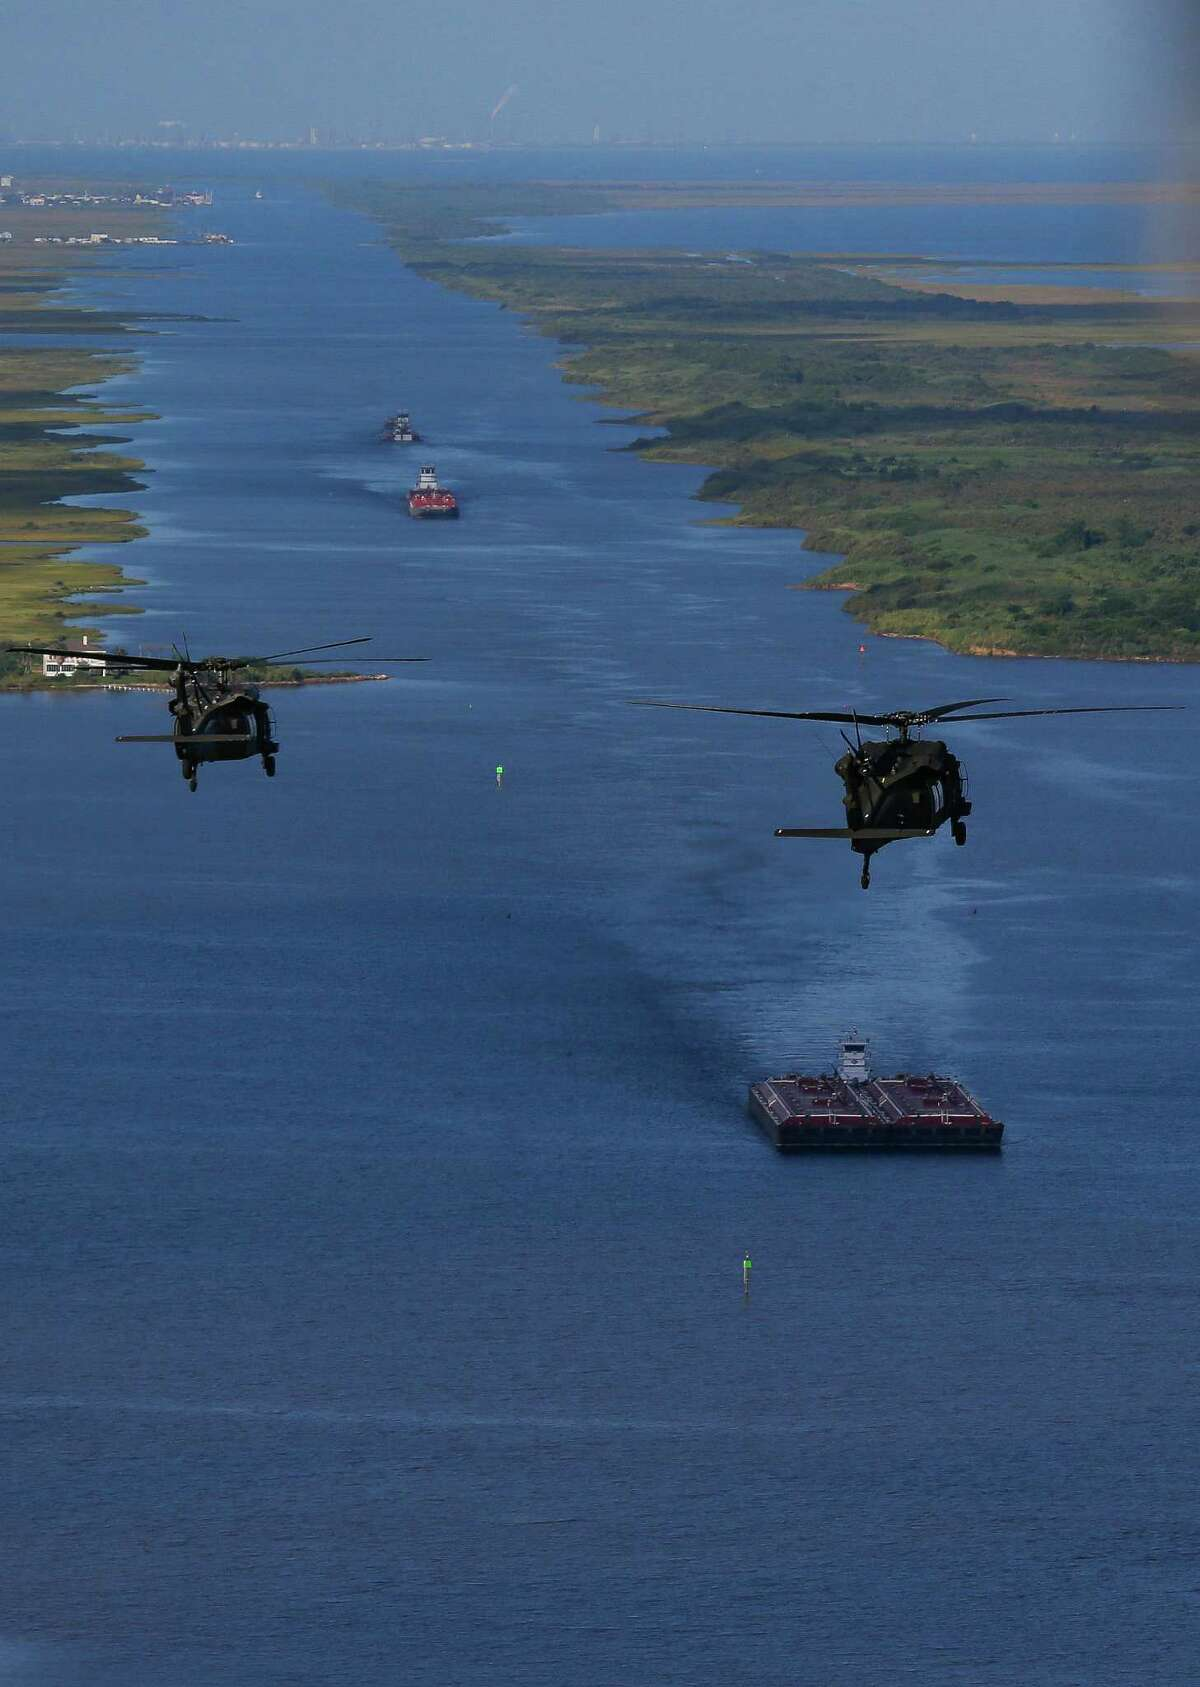 Army Black Hawk helicopters, carrying U.S. Army Corps of Engineers officials, flies over the Bolivar Peninsula Wednesday, September 7, 2016. A dike, called the